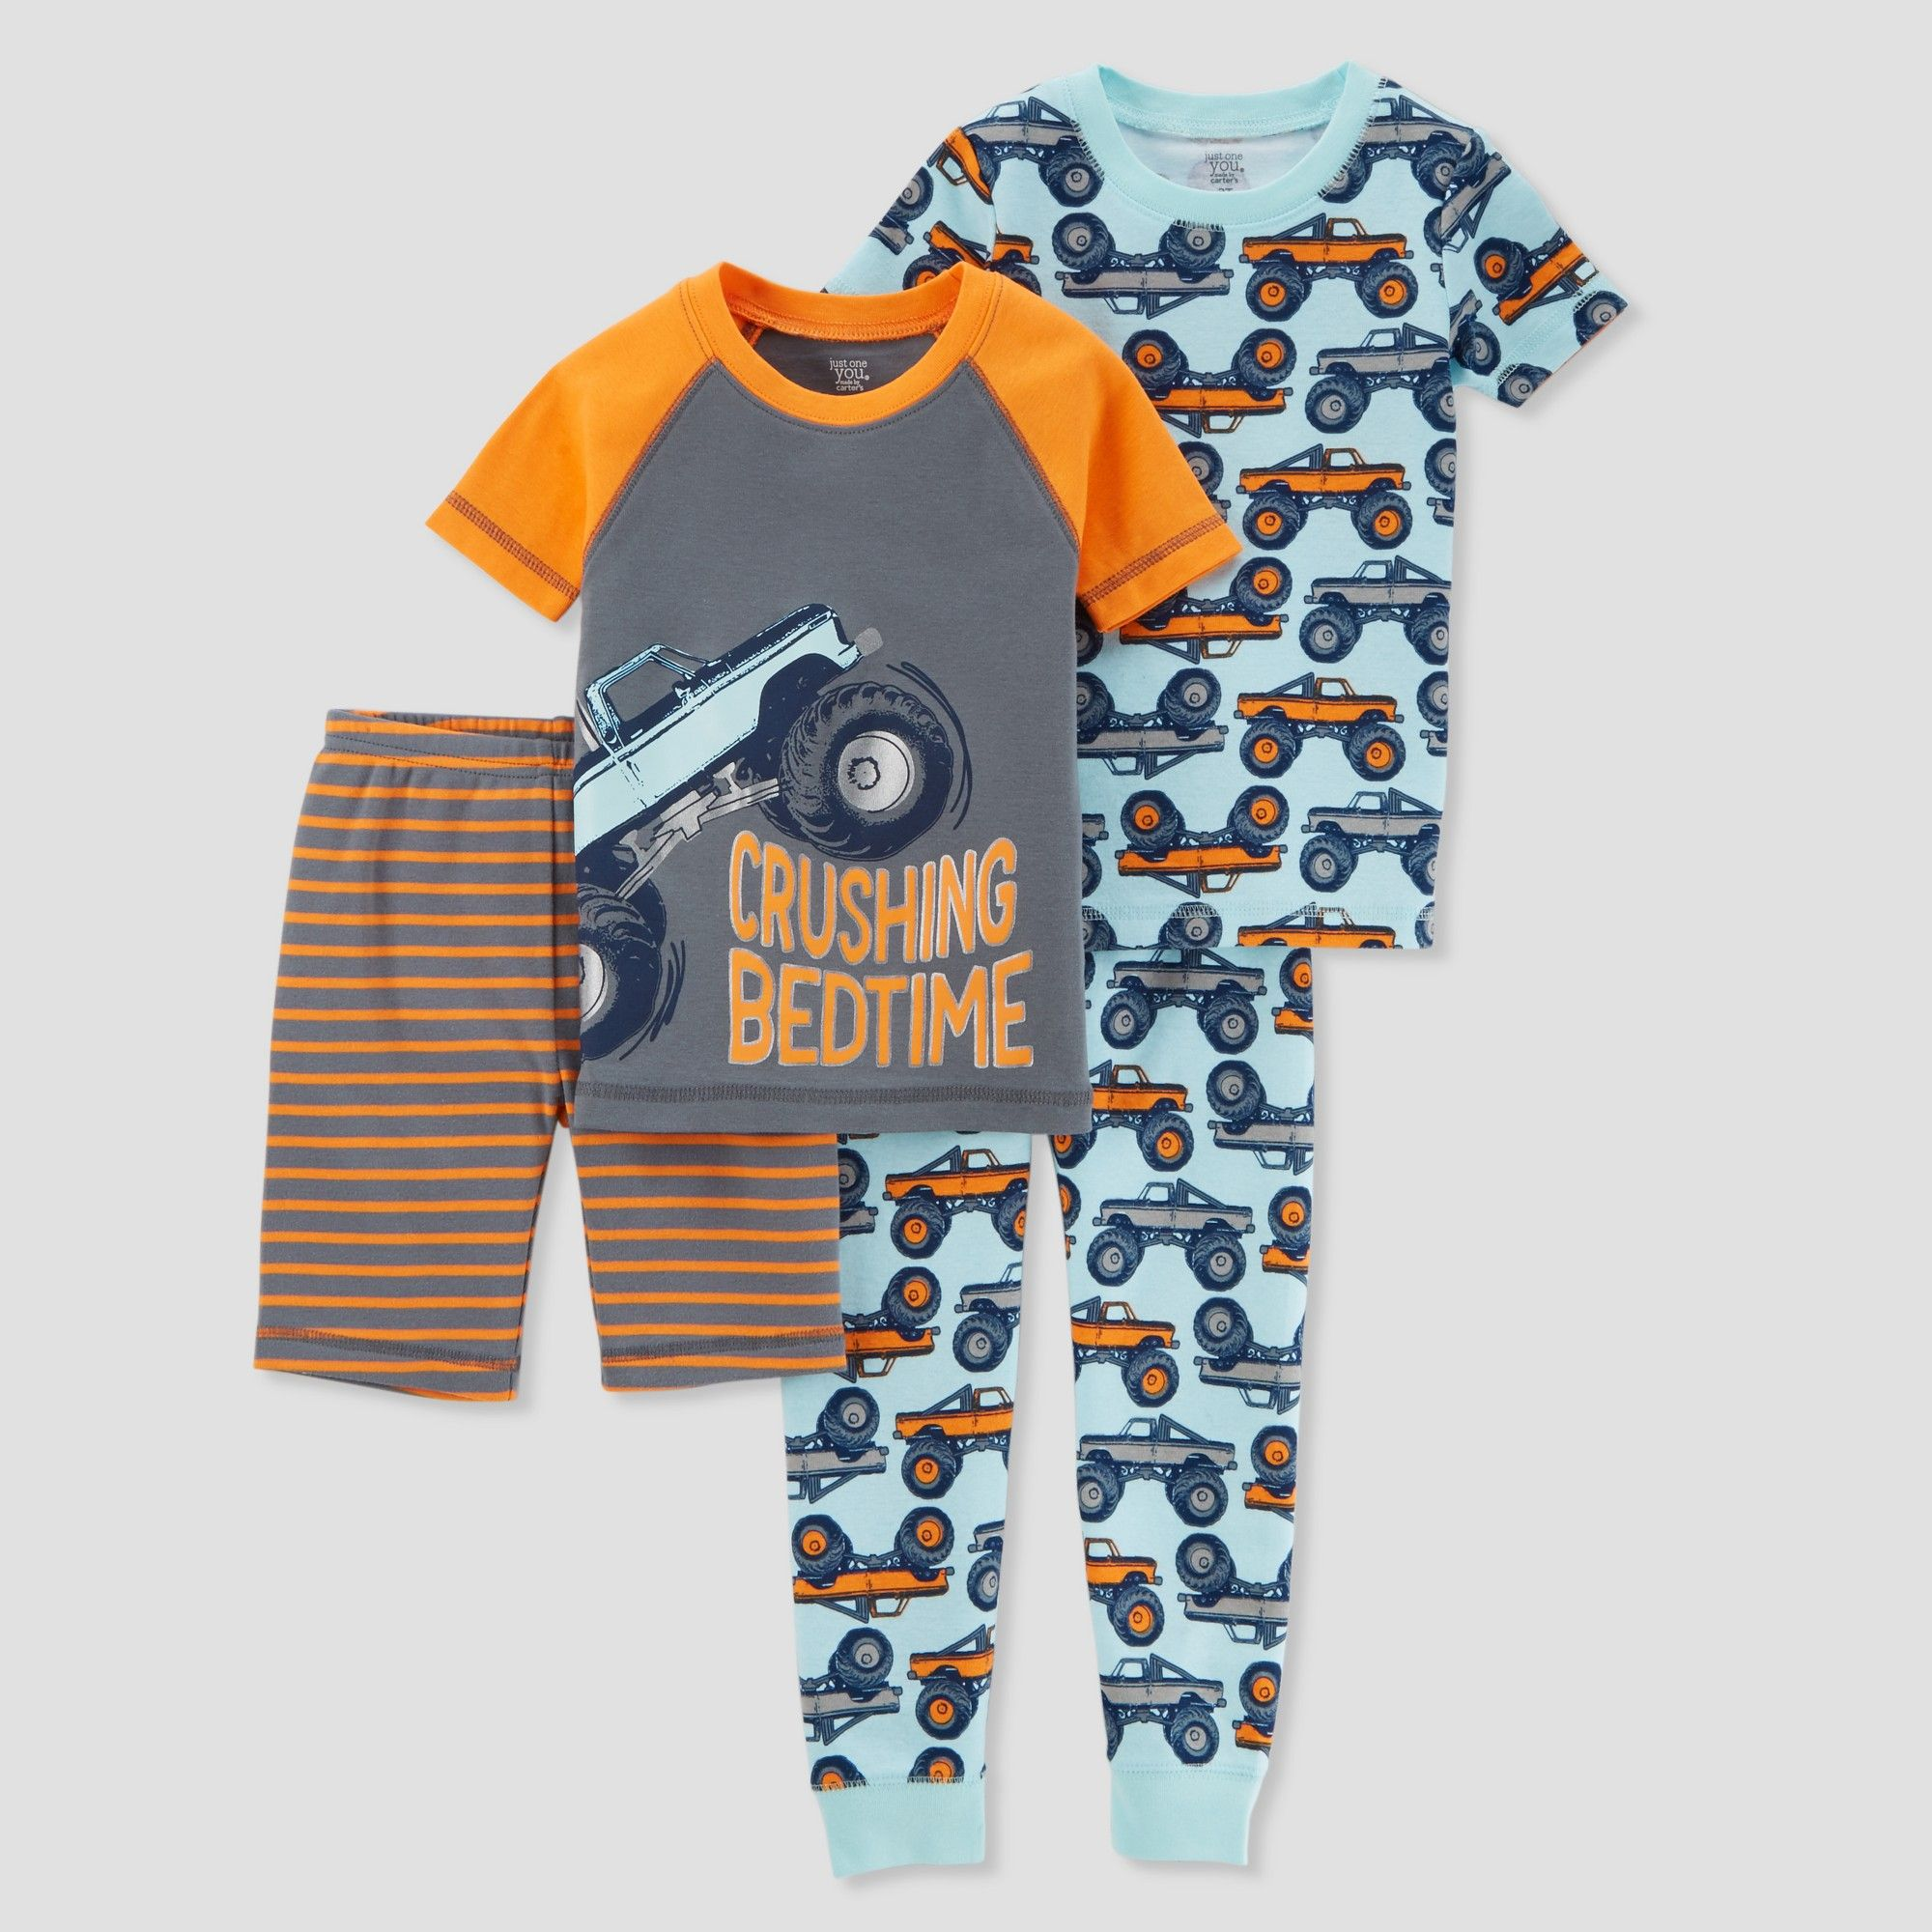 7eab01ad6bc6 Toddler Boys  4pc Crushing Bedtime Pajama Set - Just One You made by ...